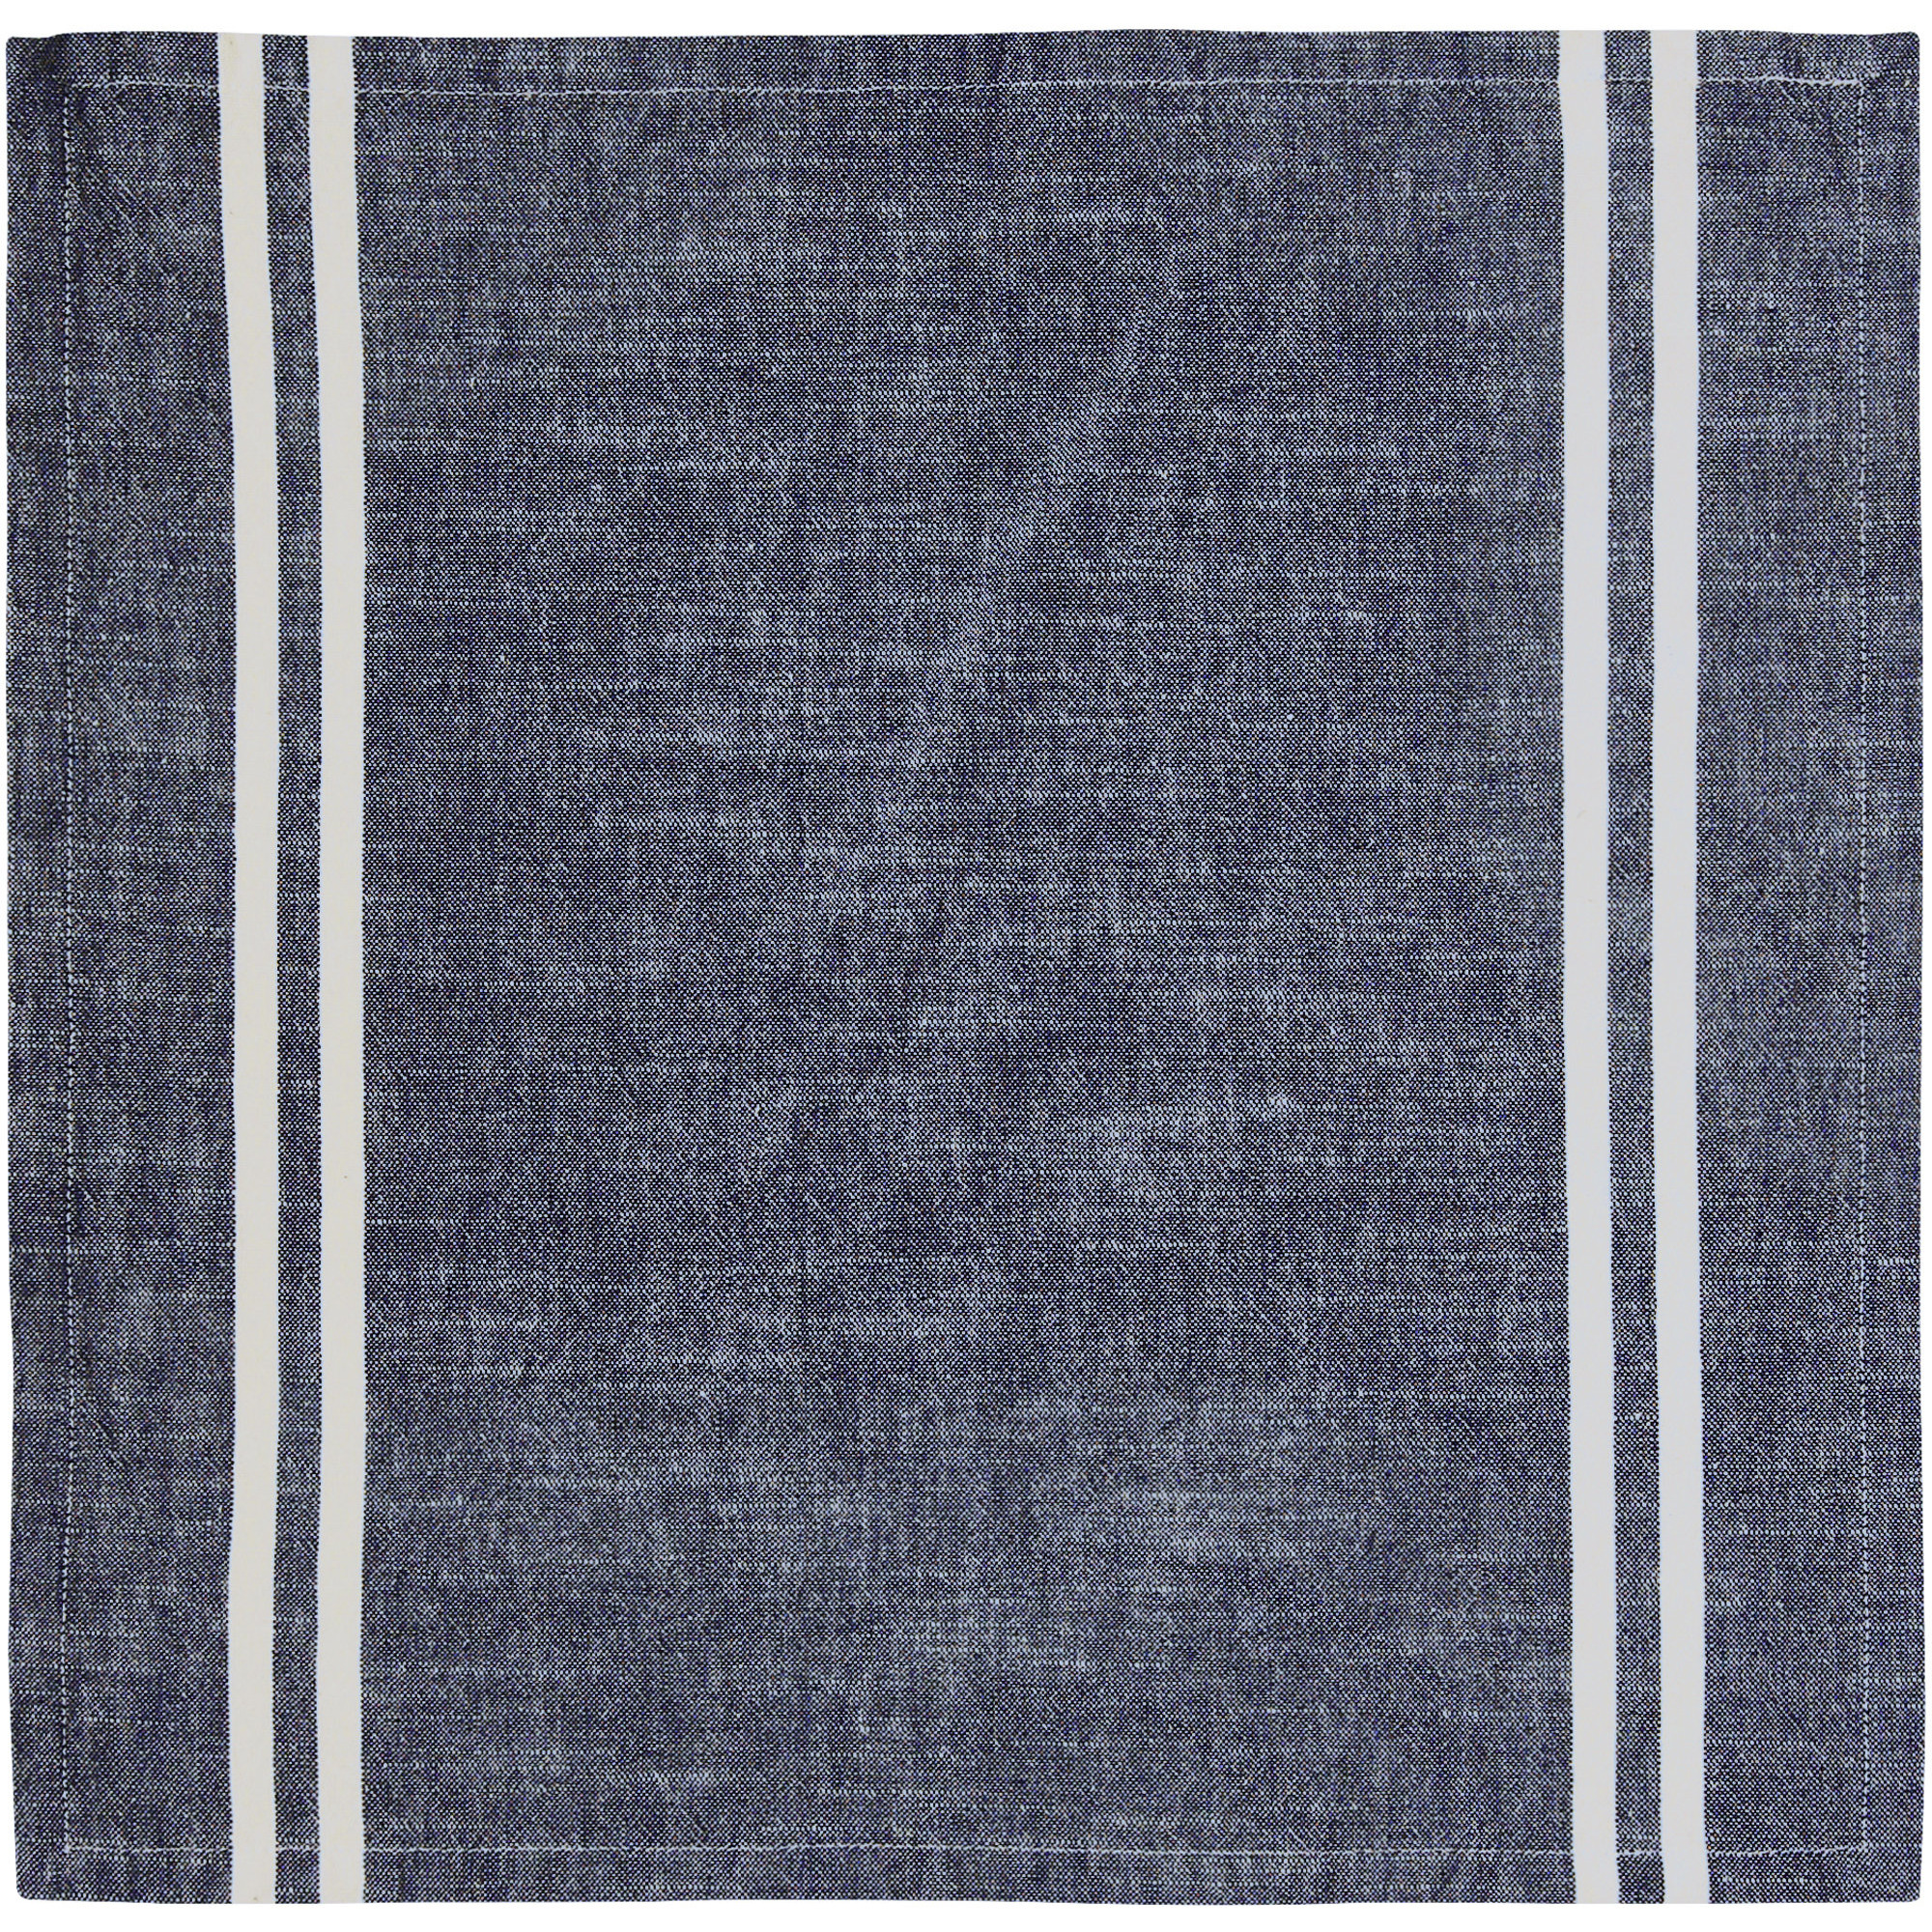 Södahl Tradition Tygservett 40 X 40 cm Indigo